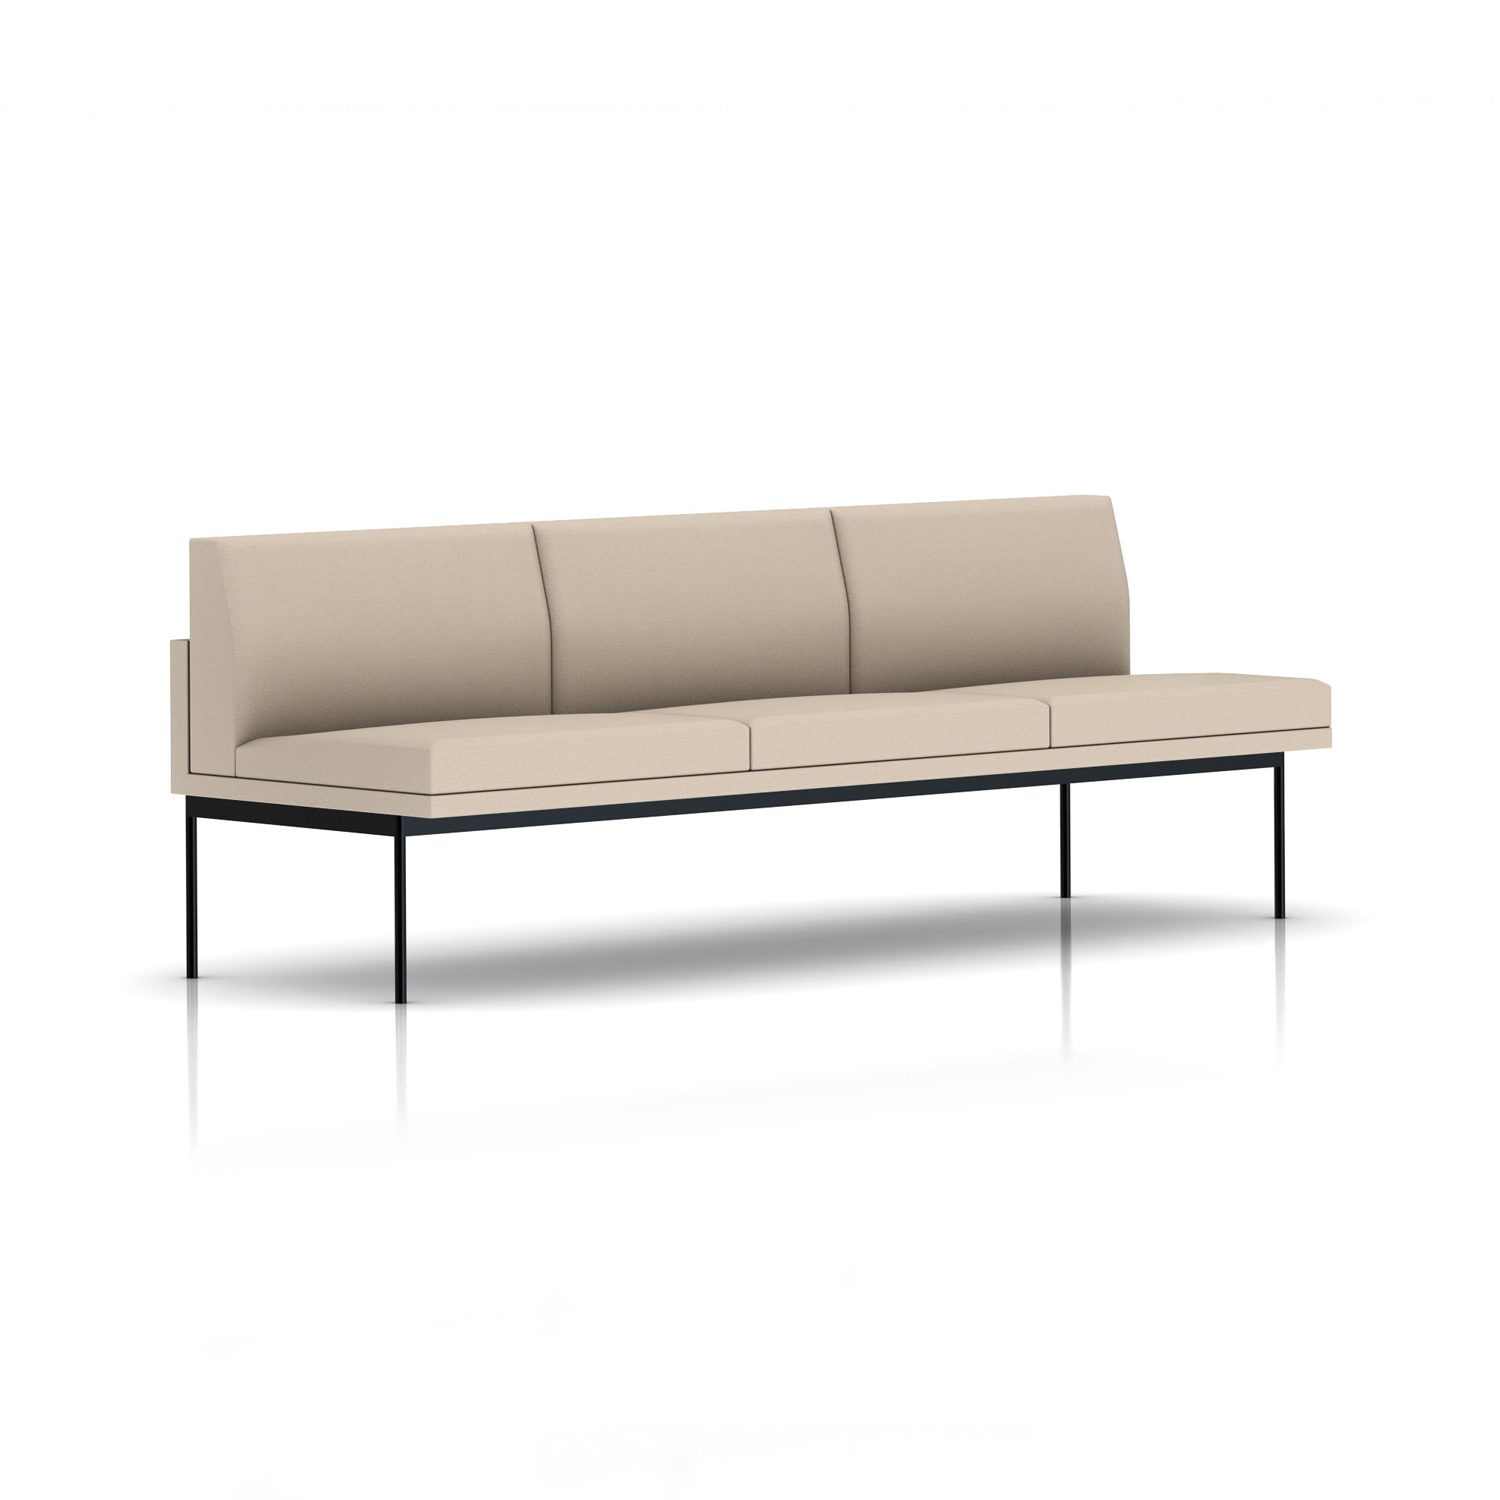 herman miller tuxedo sofa leather chaise lounge bed home furniture online